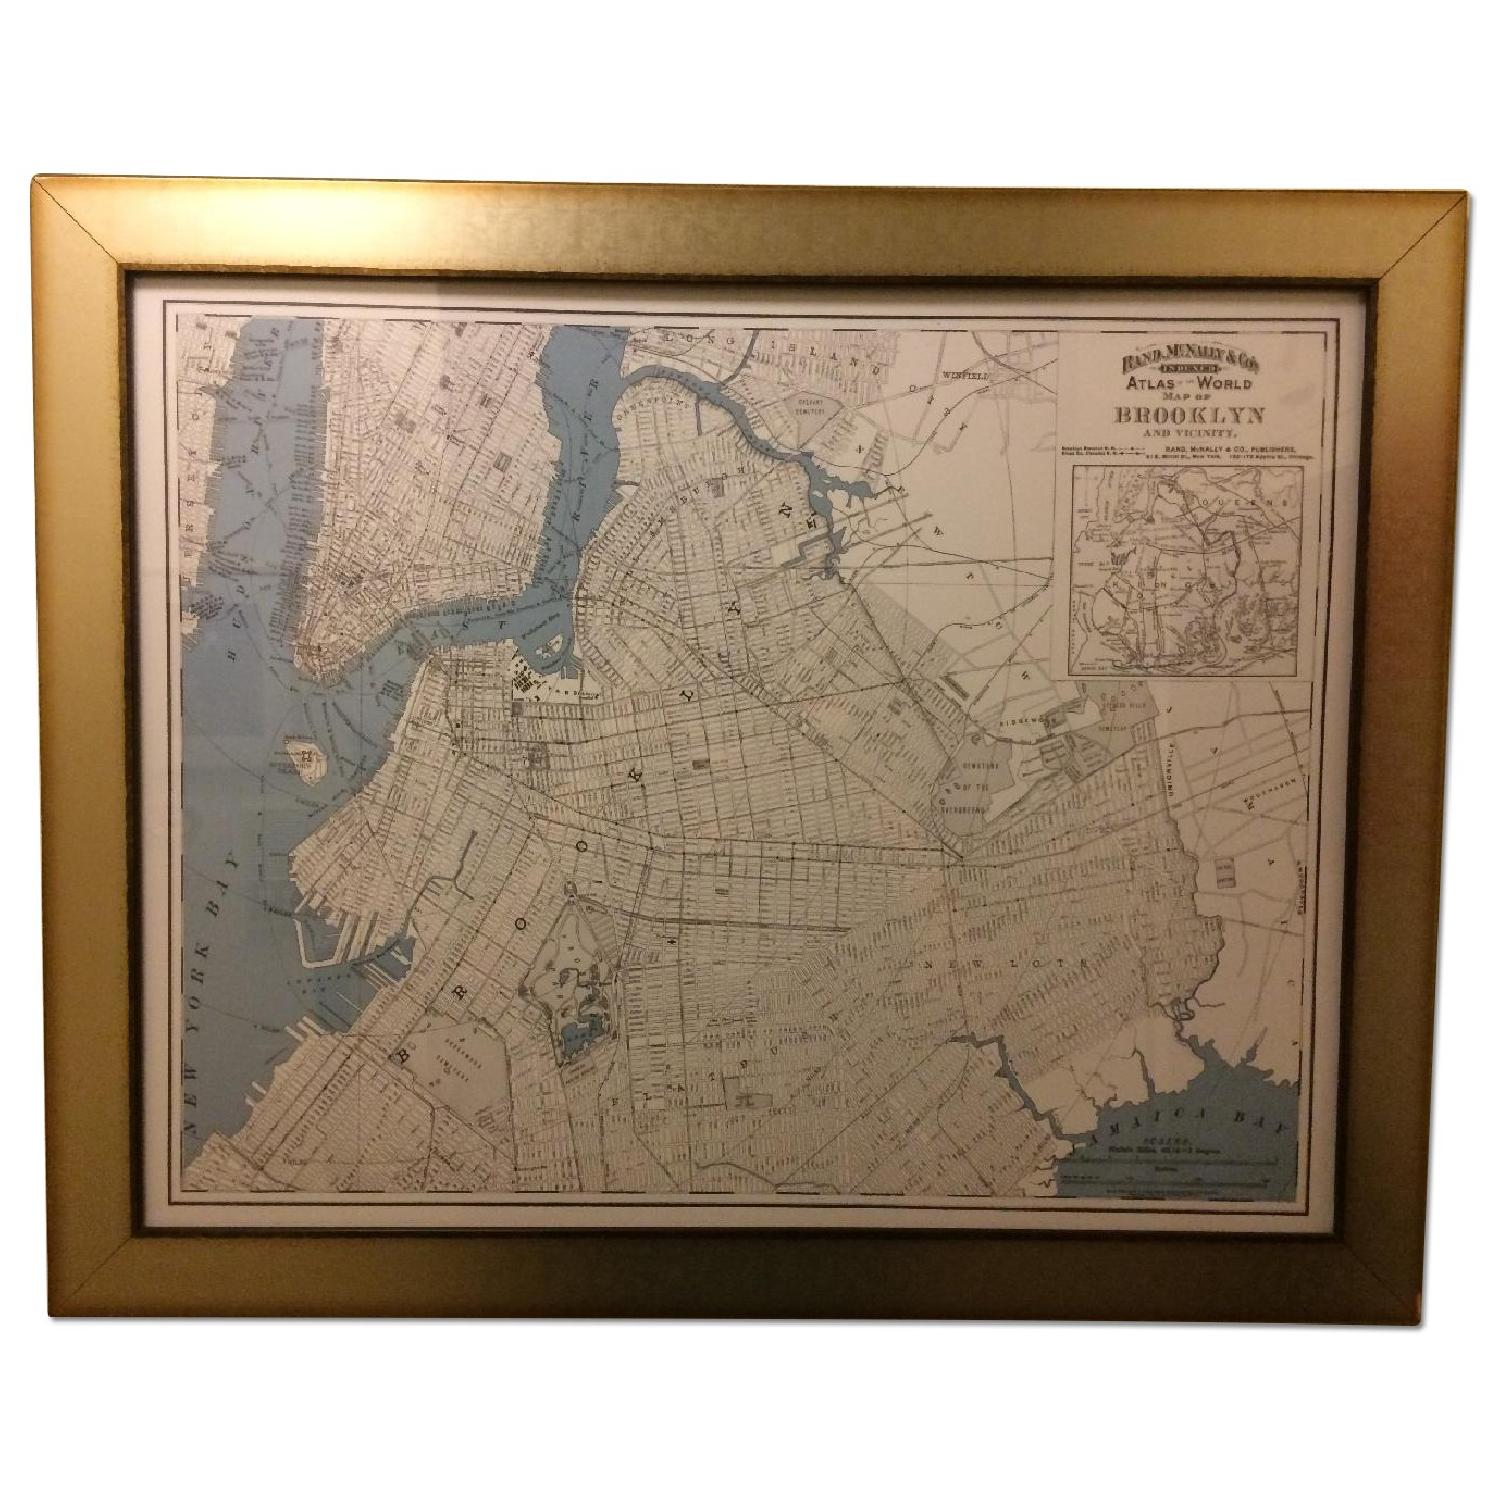 One Kings Lane Historic Brooklyn Map in Burnished Silver Frame - image-0